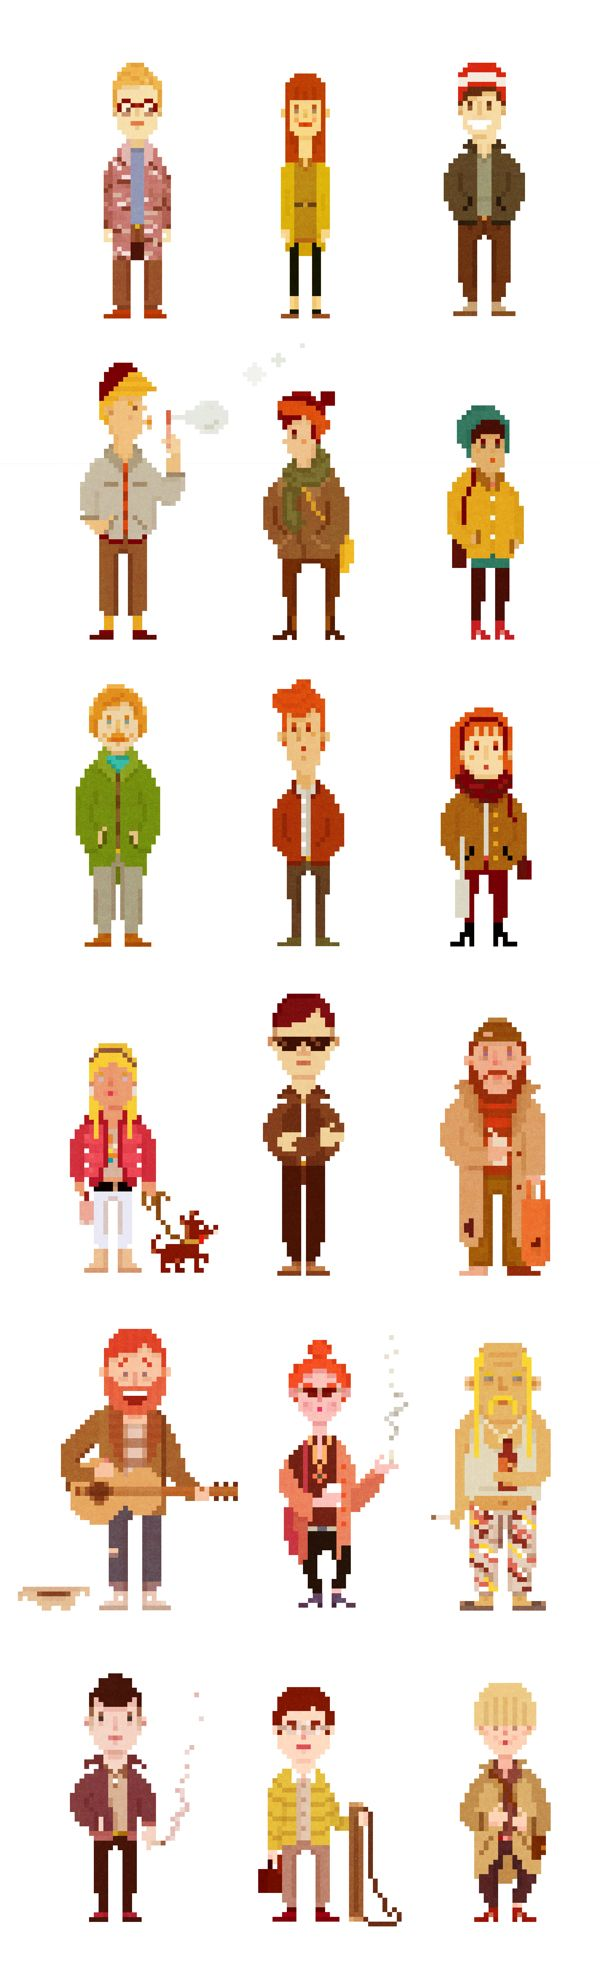 Pixel Based Characters. Could be incorporated into my animation and combine them with the pixel bands